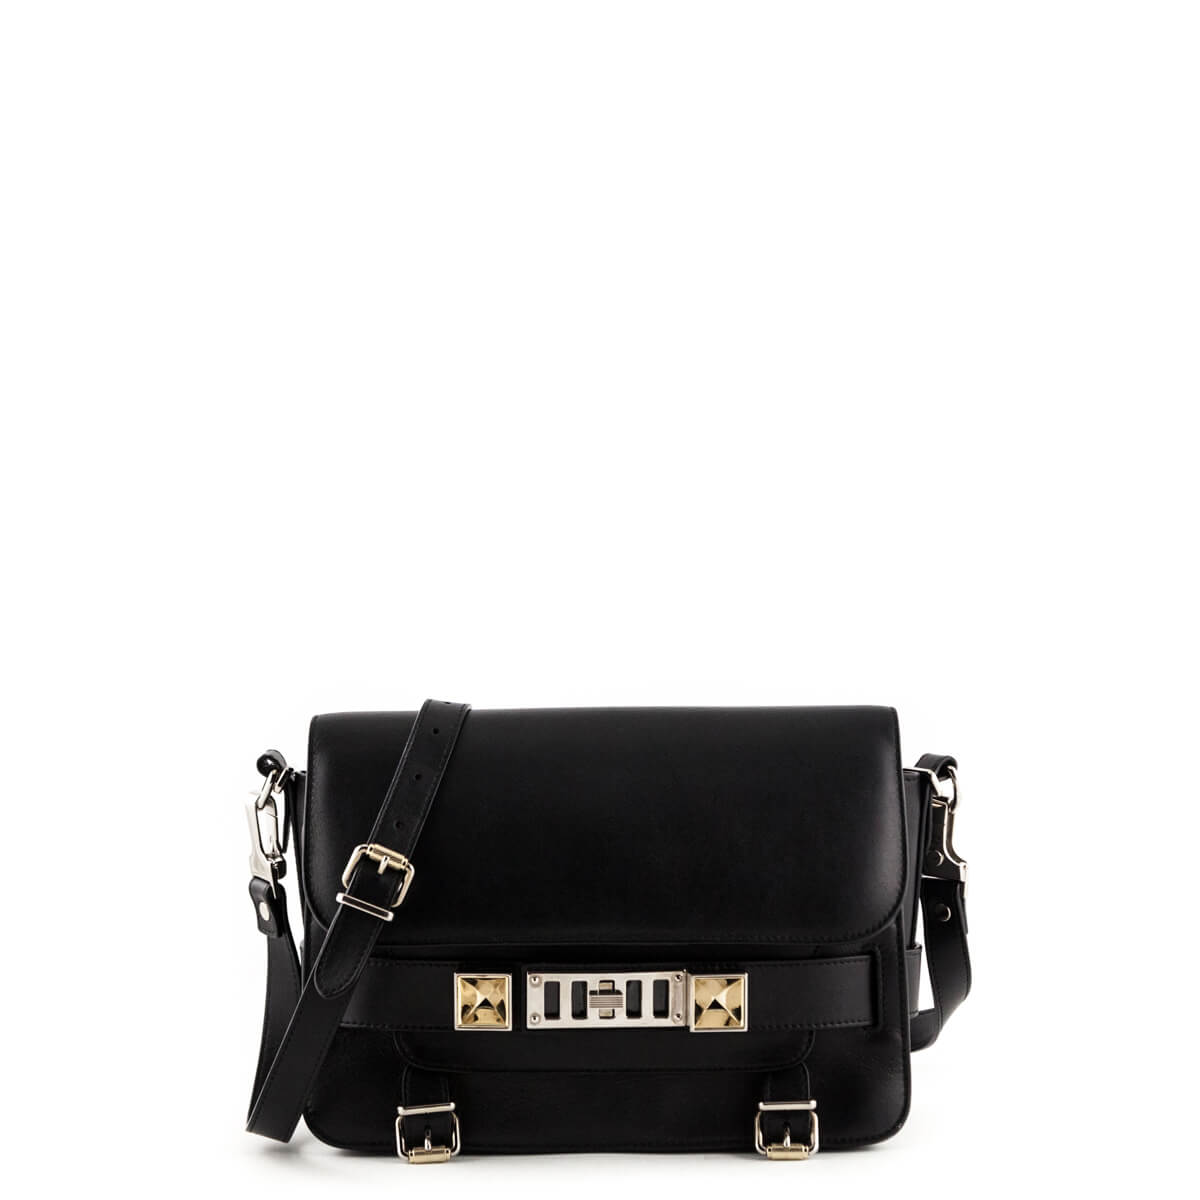 bc0d423662c9 Proenza Schouler Black Calfskin Classic PS11 - LOVE that BAG - Preowned  Authentic Designer Handbags ...